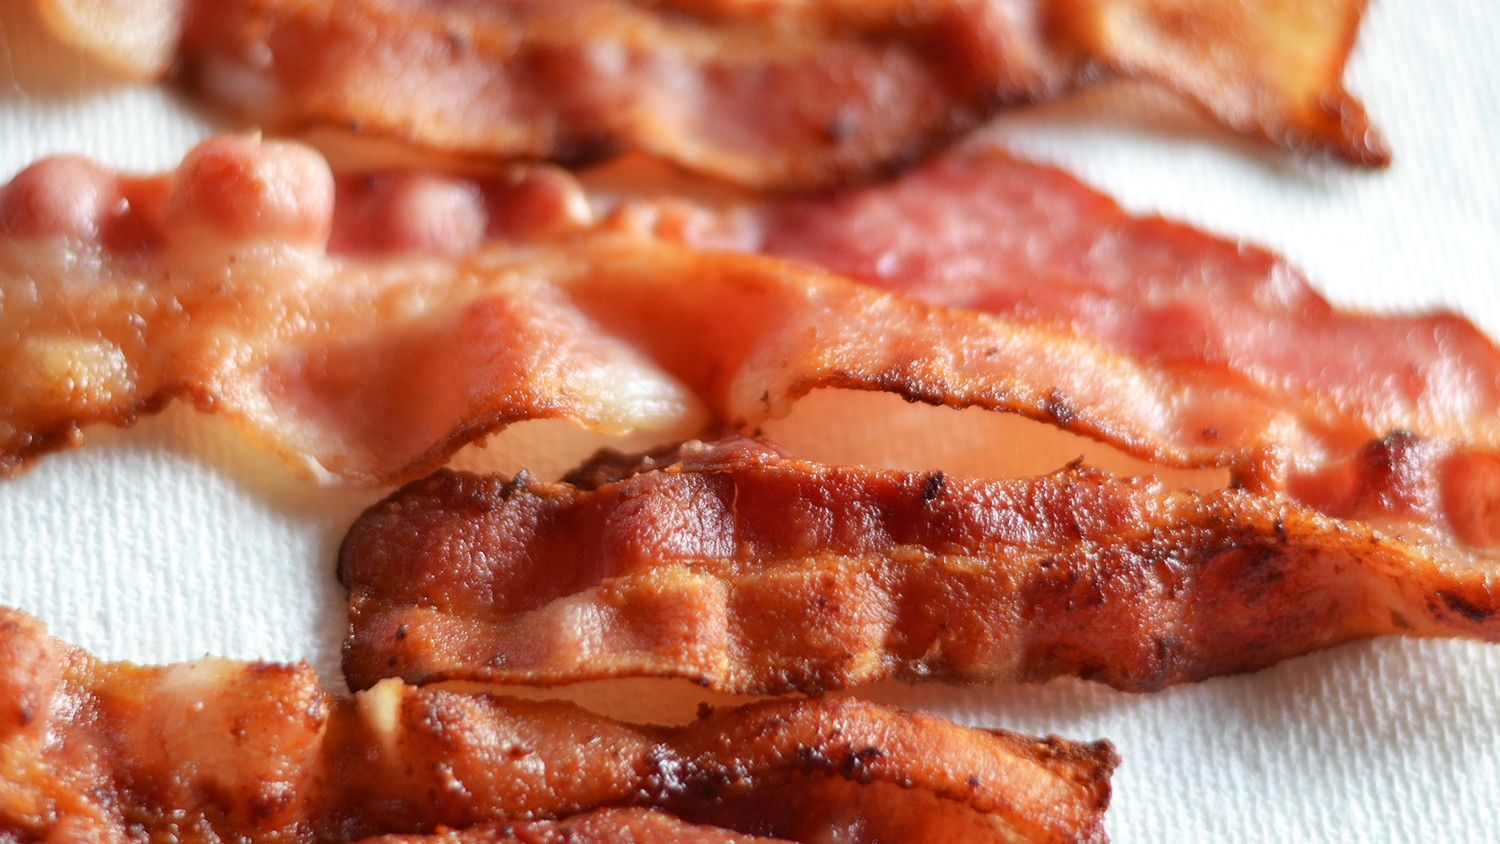 The Best Bacon in America